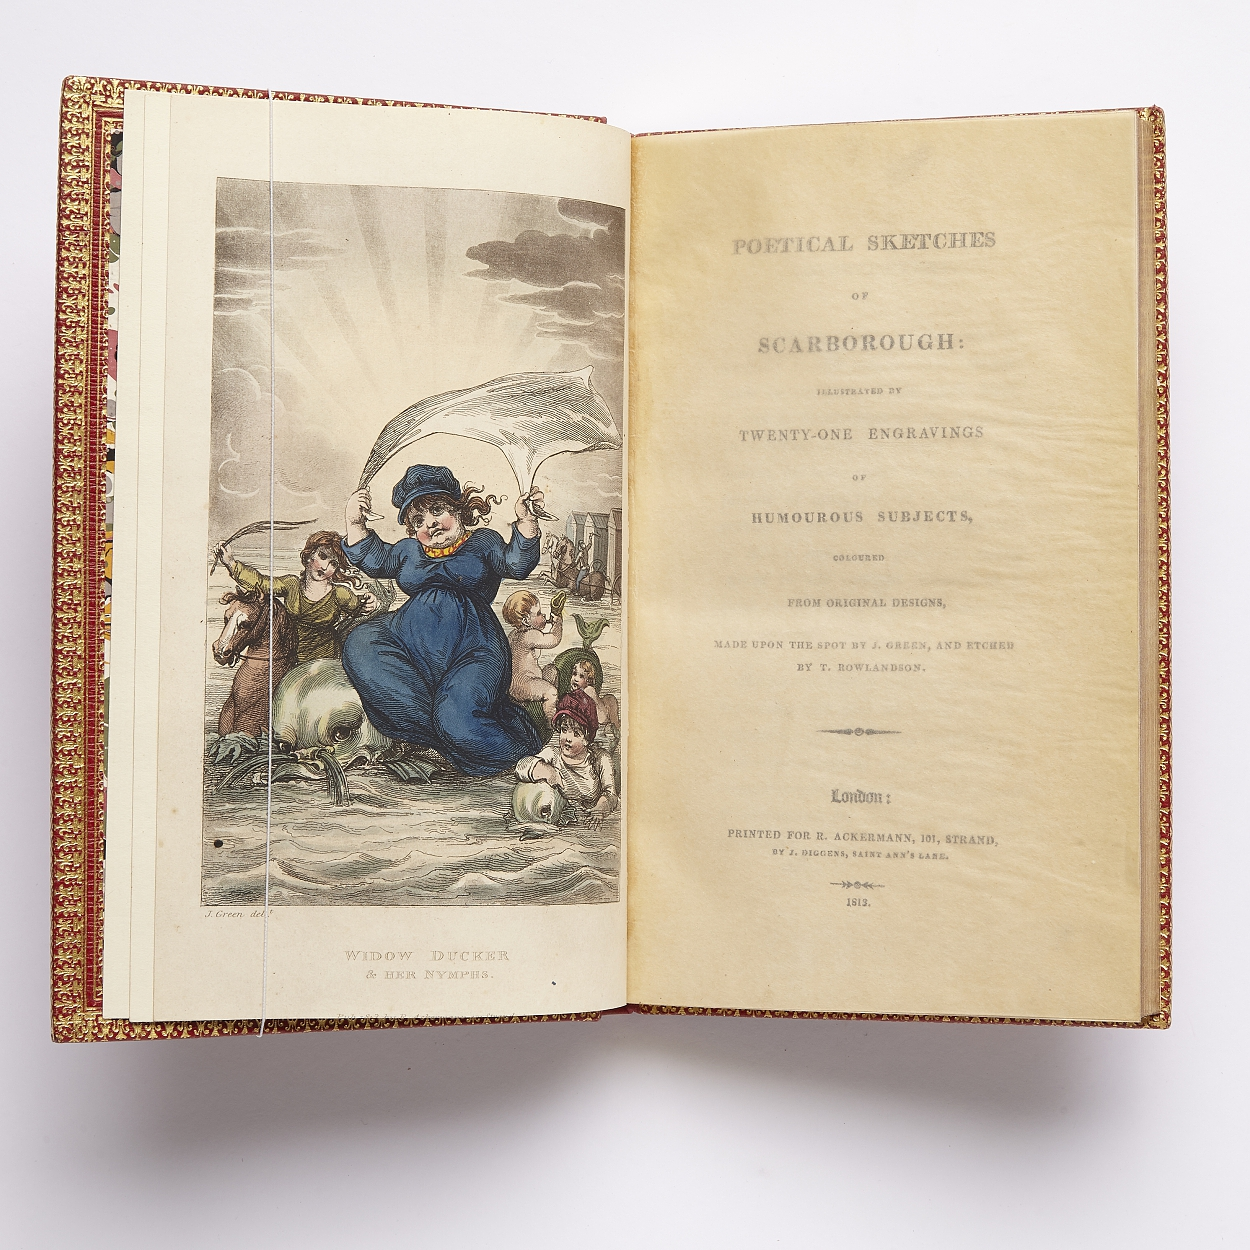 Rowlandson's illustrations to Poetical Sketches